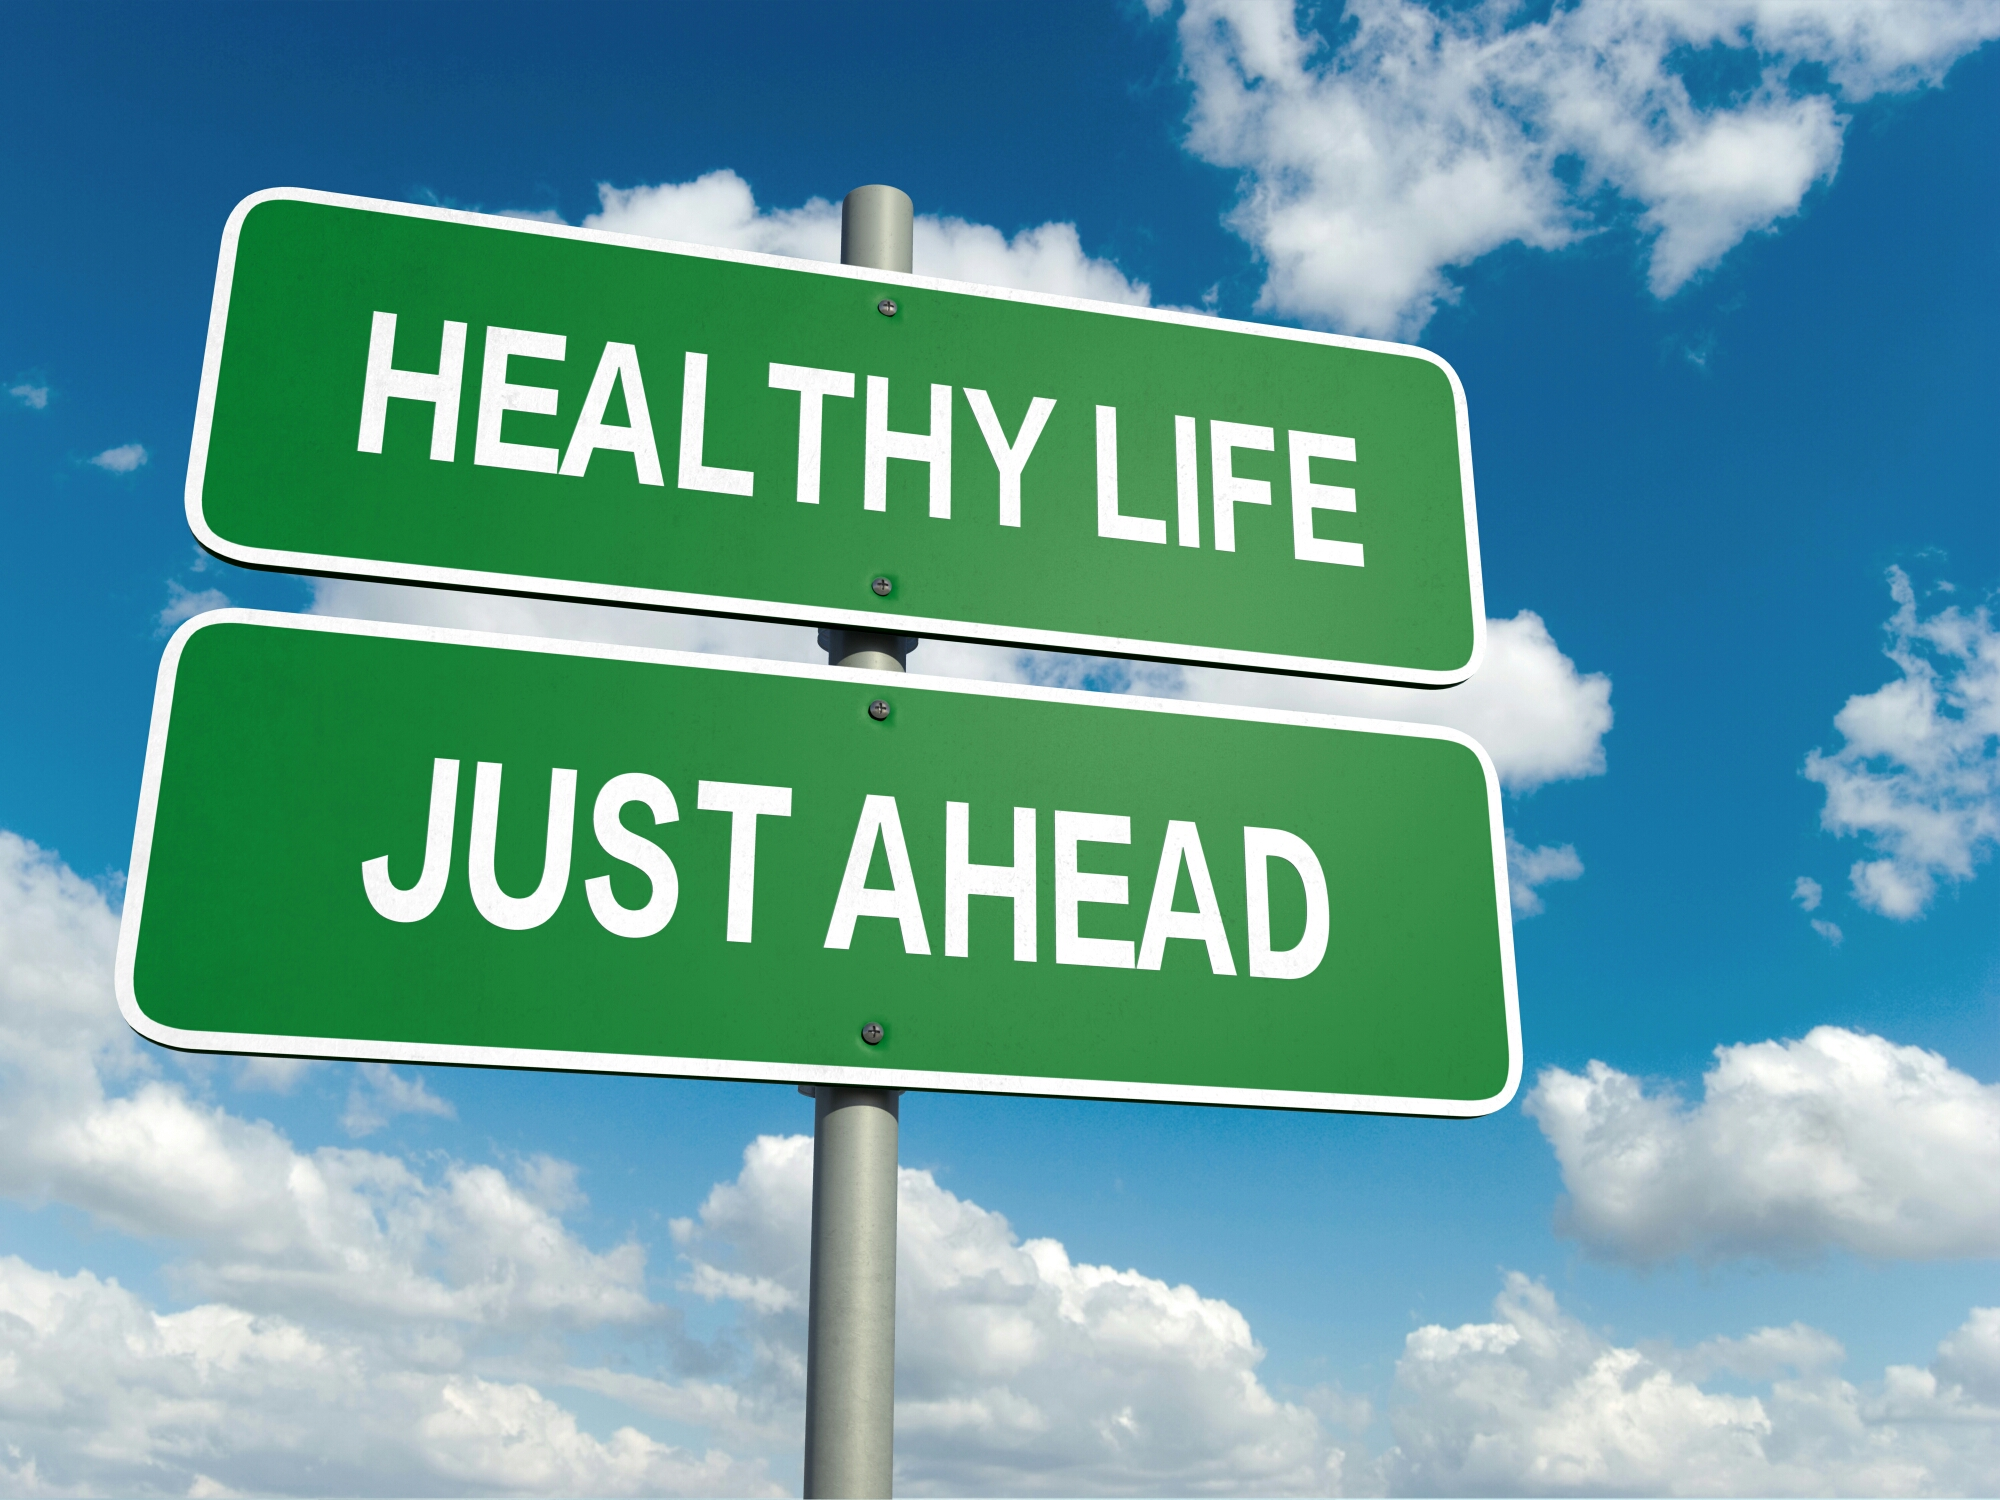 Tips to pursue healthy life ahead